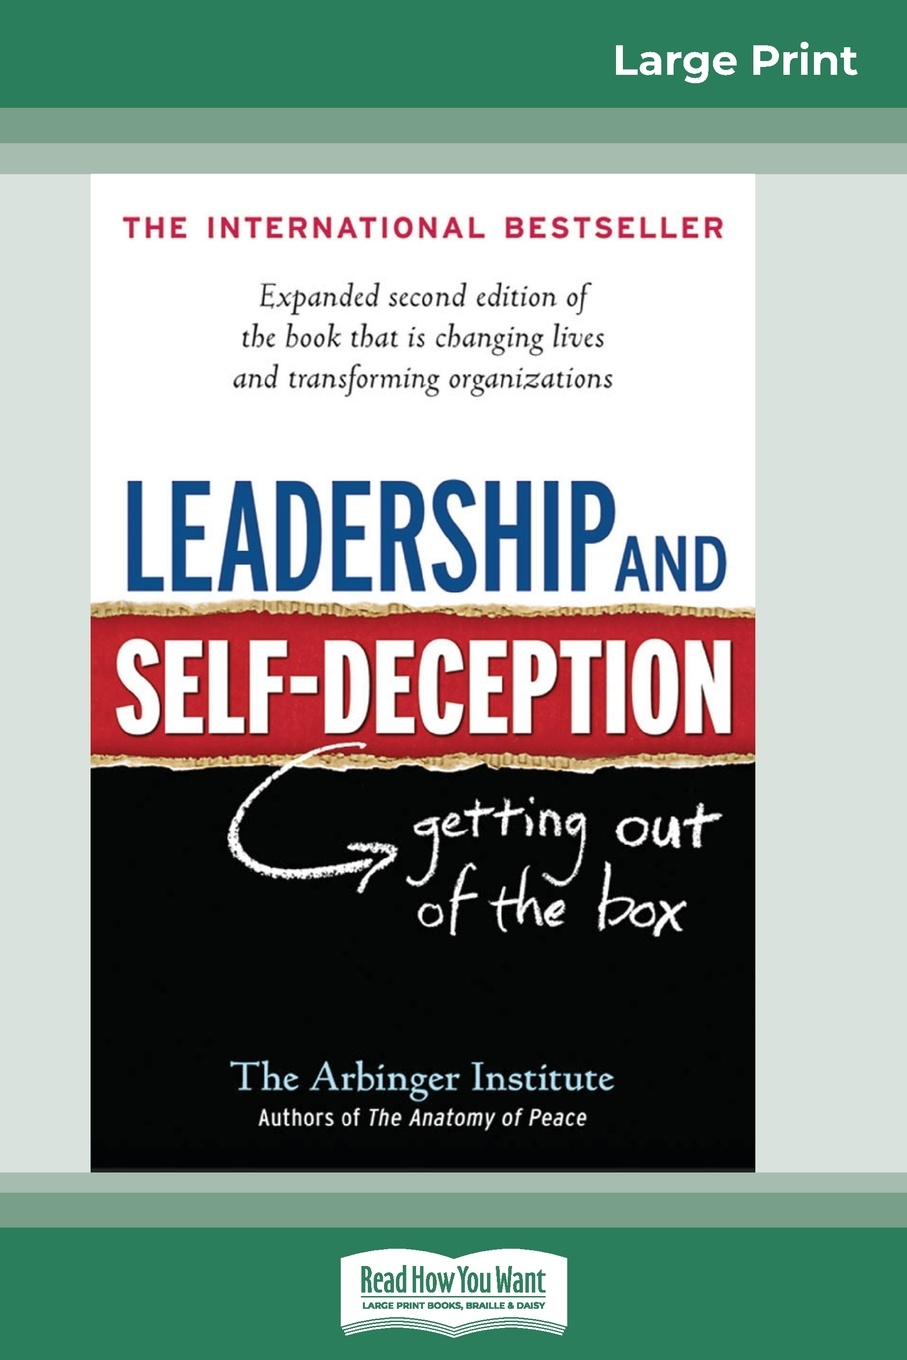 The Arbinger Institute Leadership and Self-Deception. Getting Out of the Box (16pt Large Print Edition) facing the modern